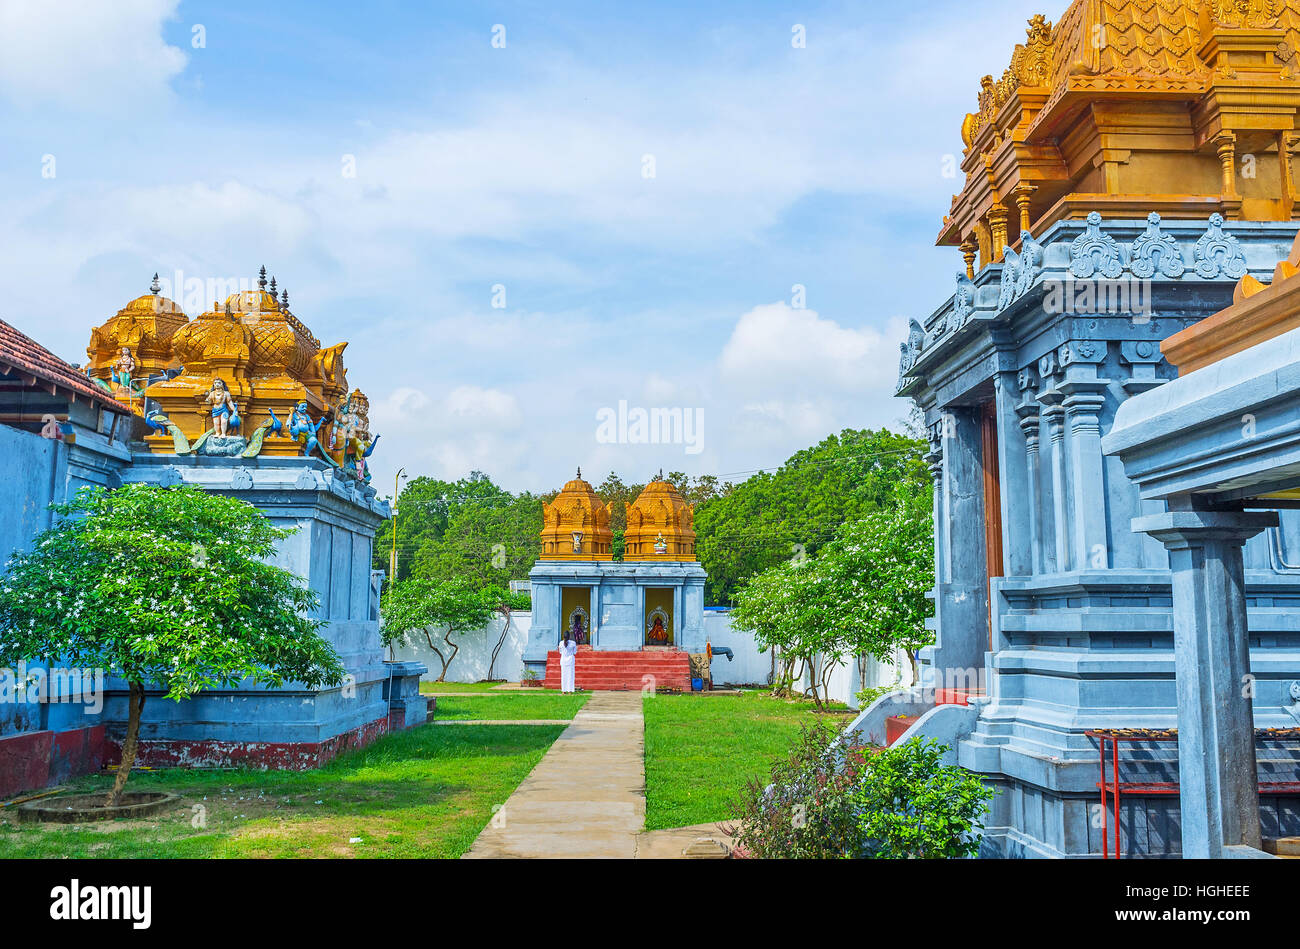 Hindu Temple Garden Stock Photos & Hindu Temple Garden Stock Images